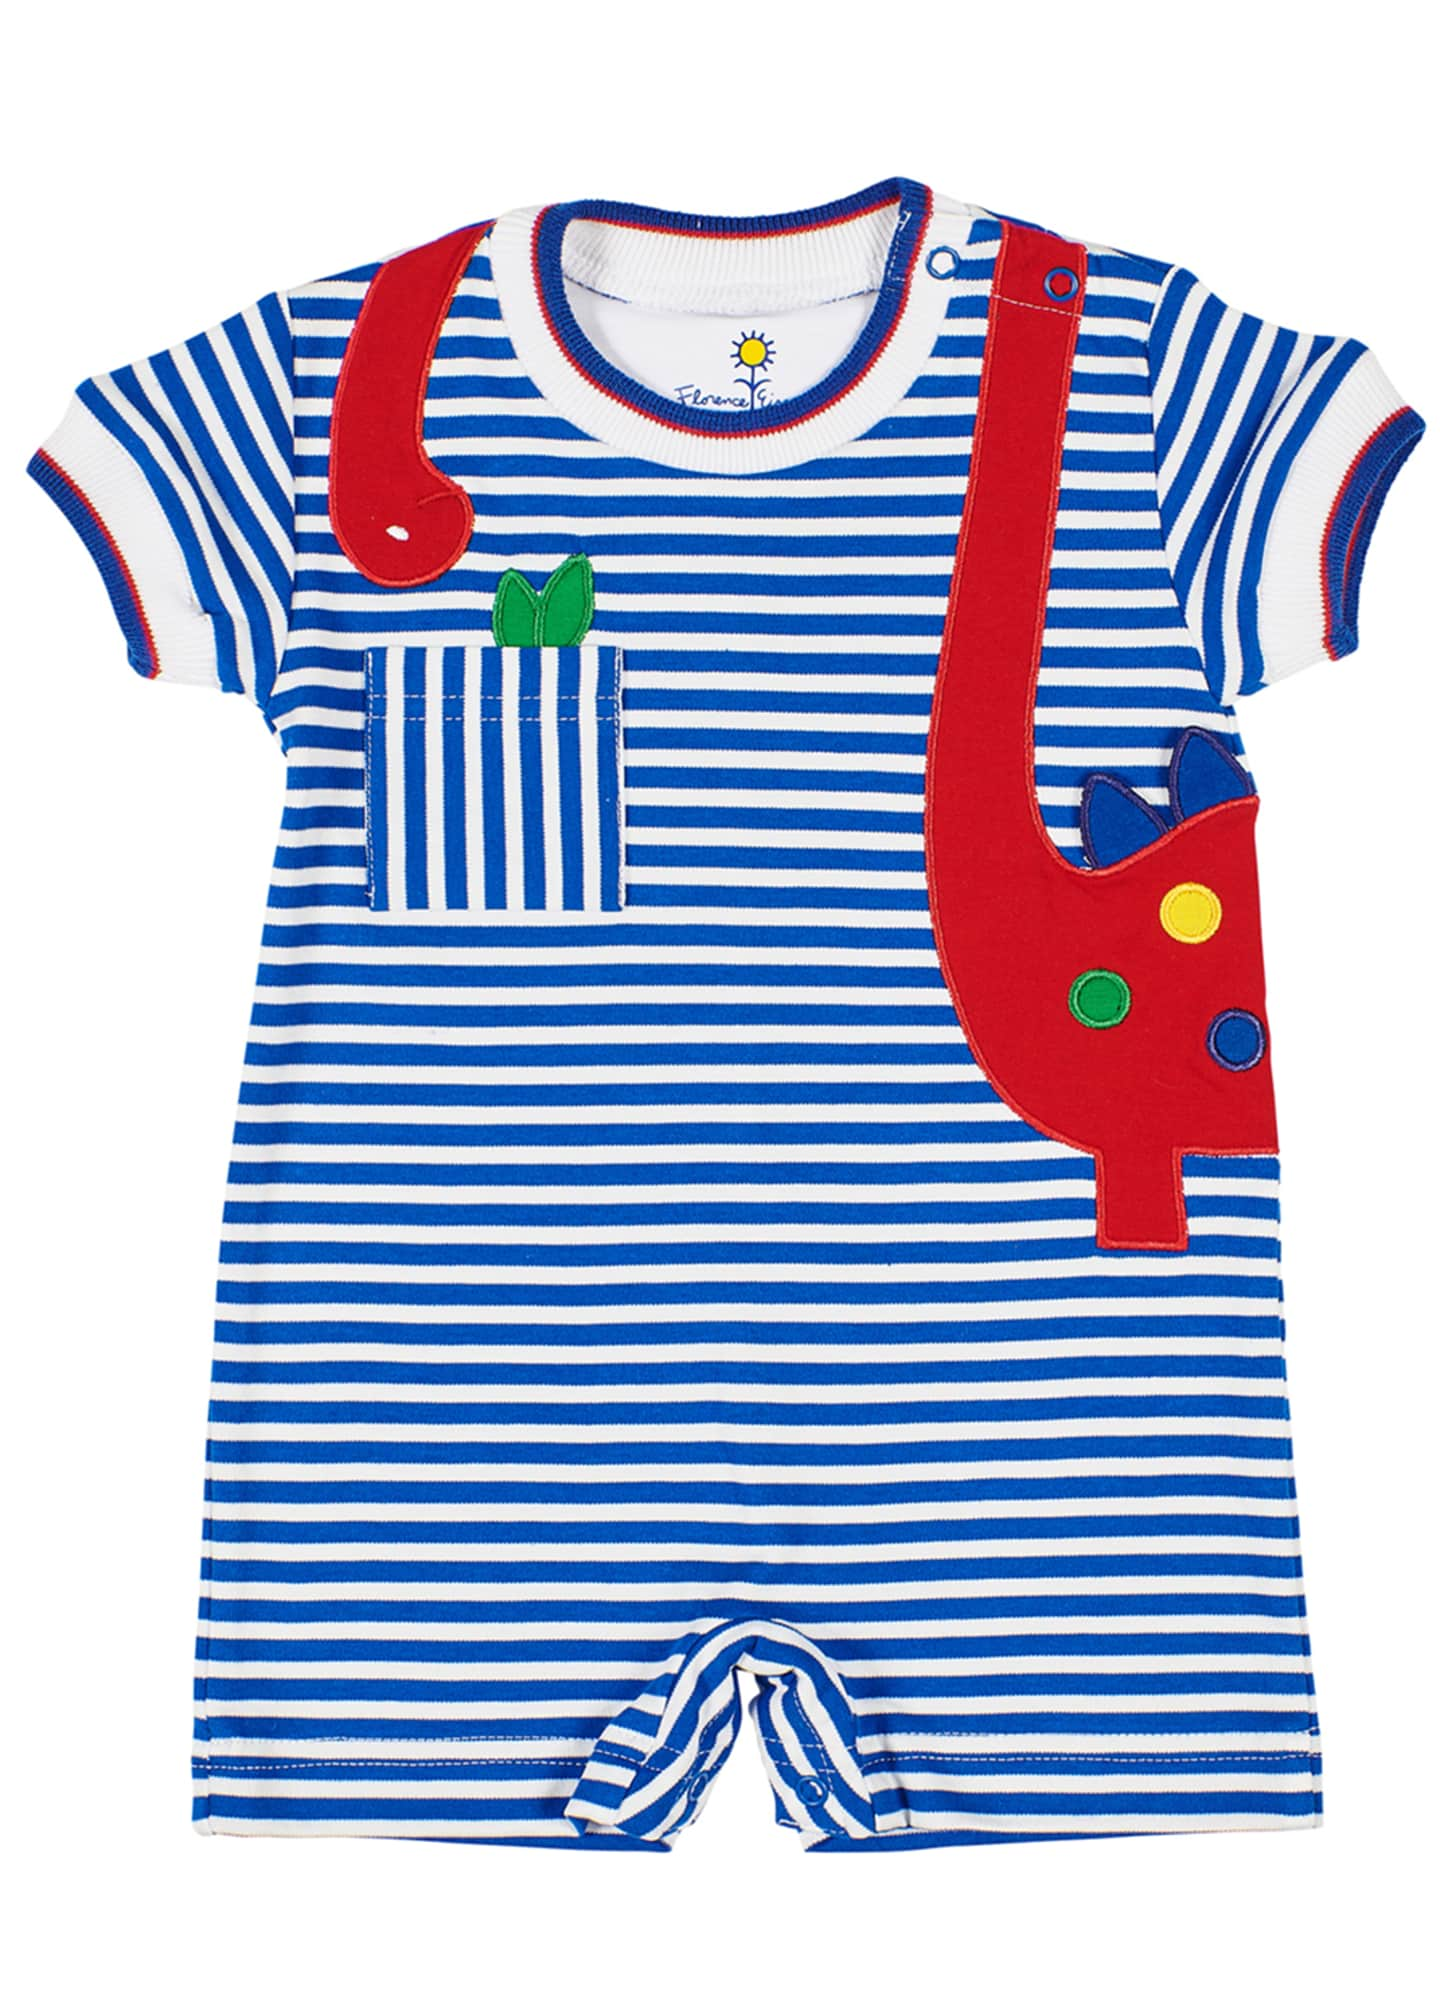 Florence Eiseman Stripe Knit Shortall w/ Dinosaur Applique,